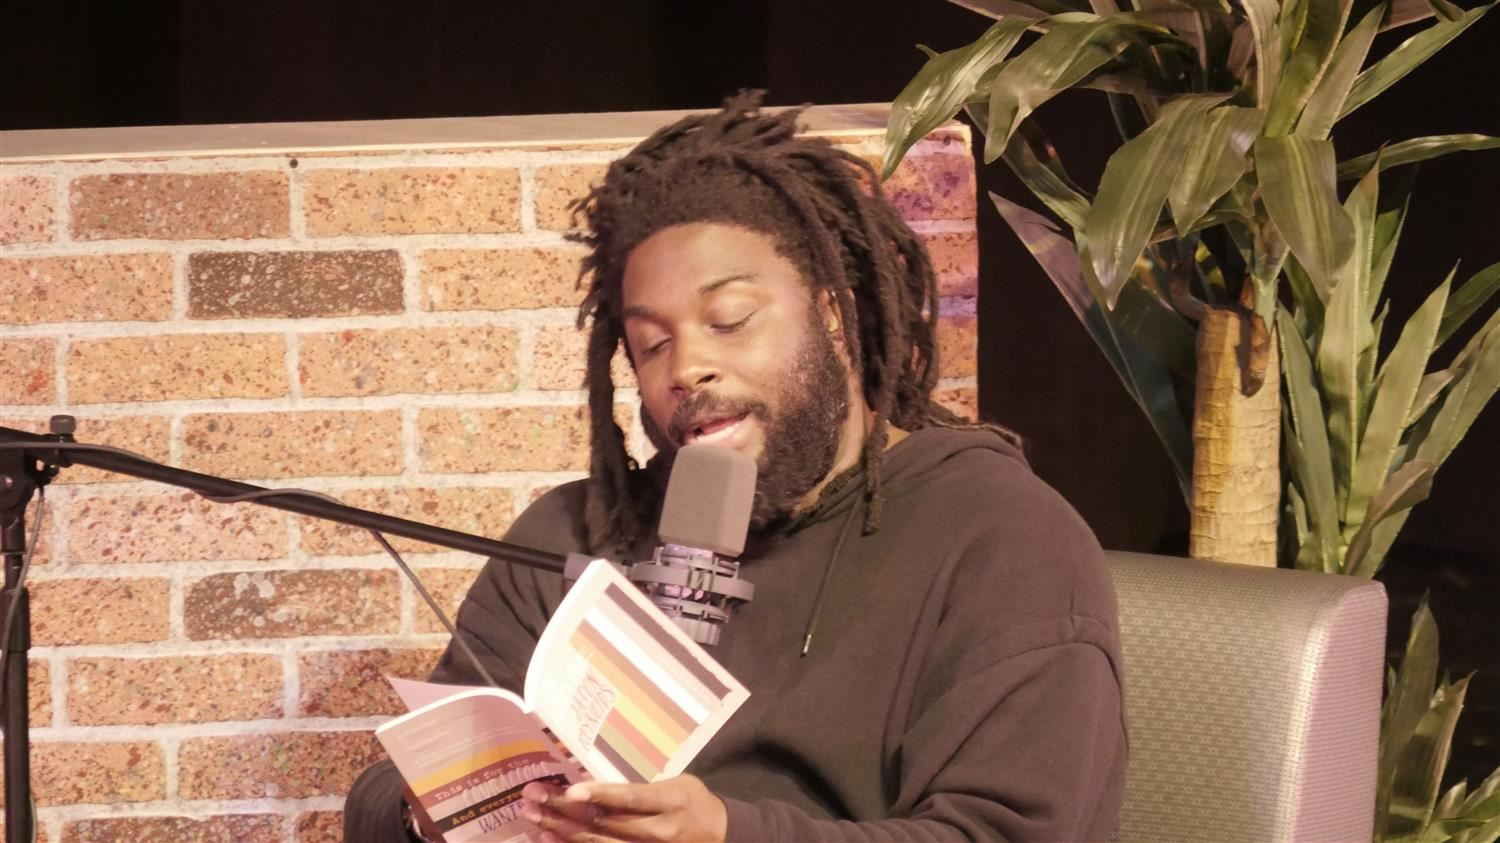 Outstanding Turn-Out For Young Adult Author Jason Reynolds